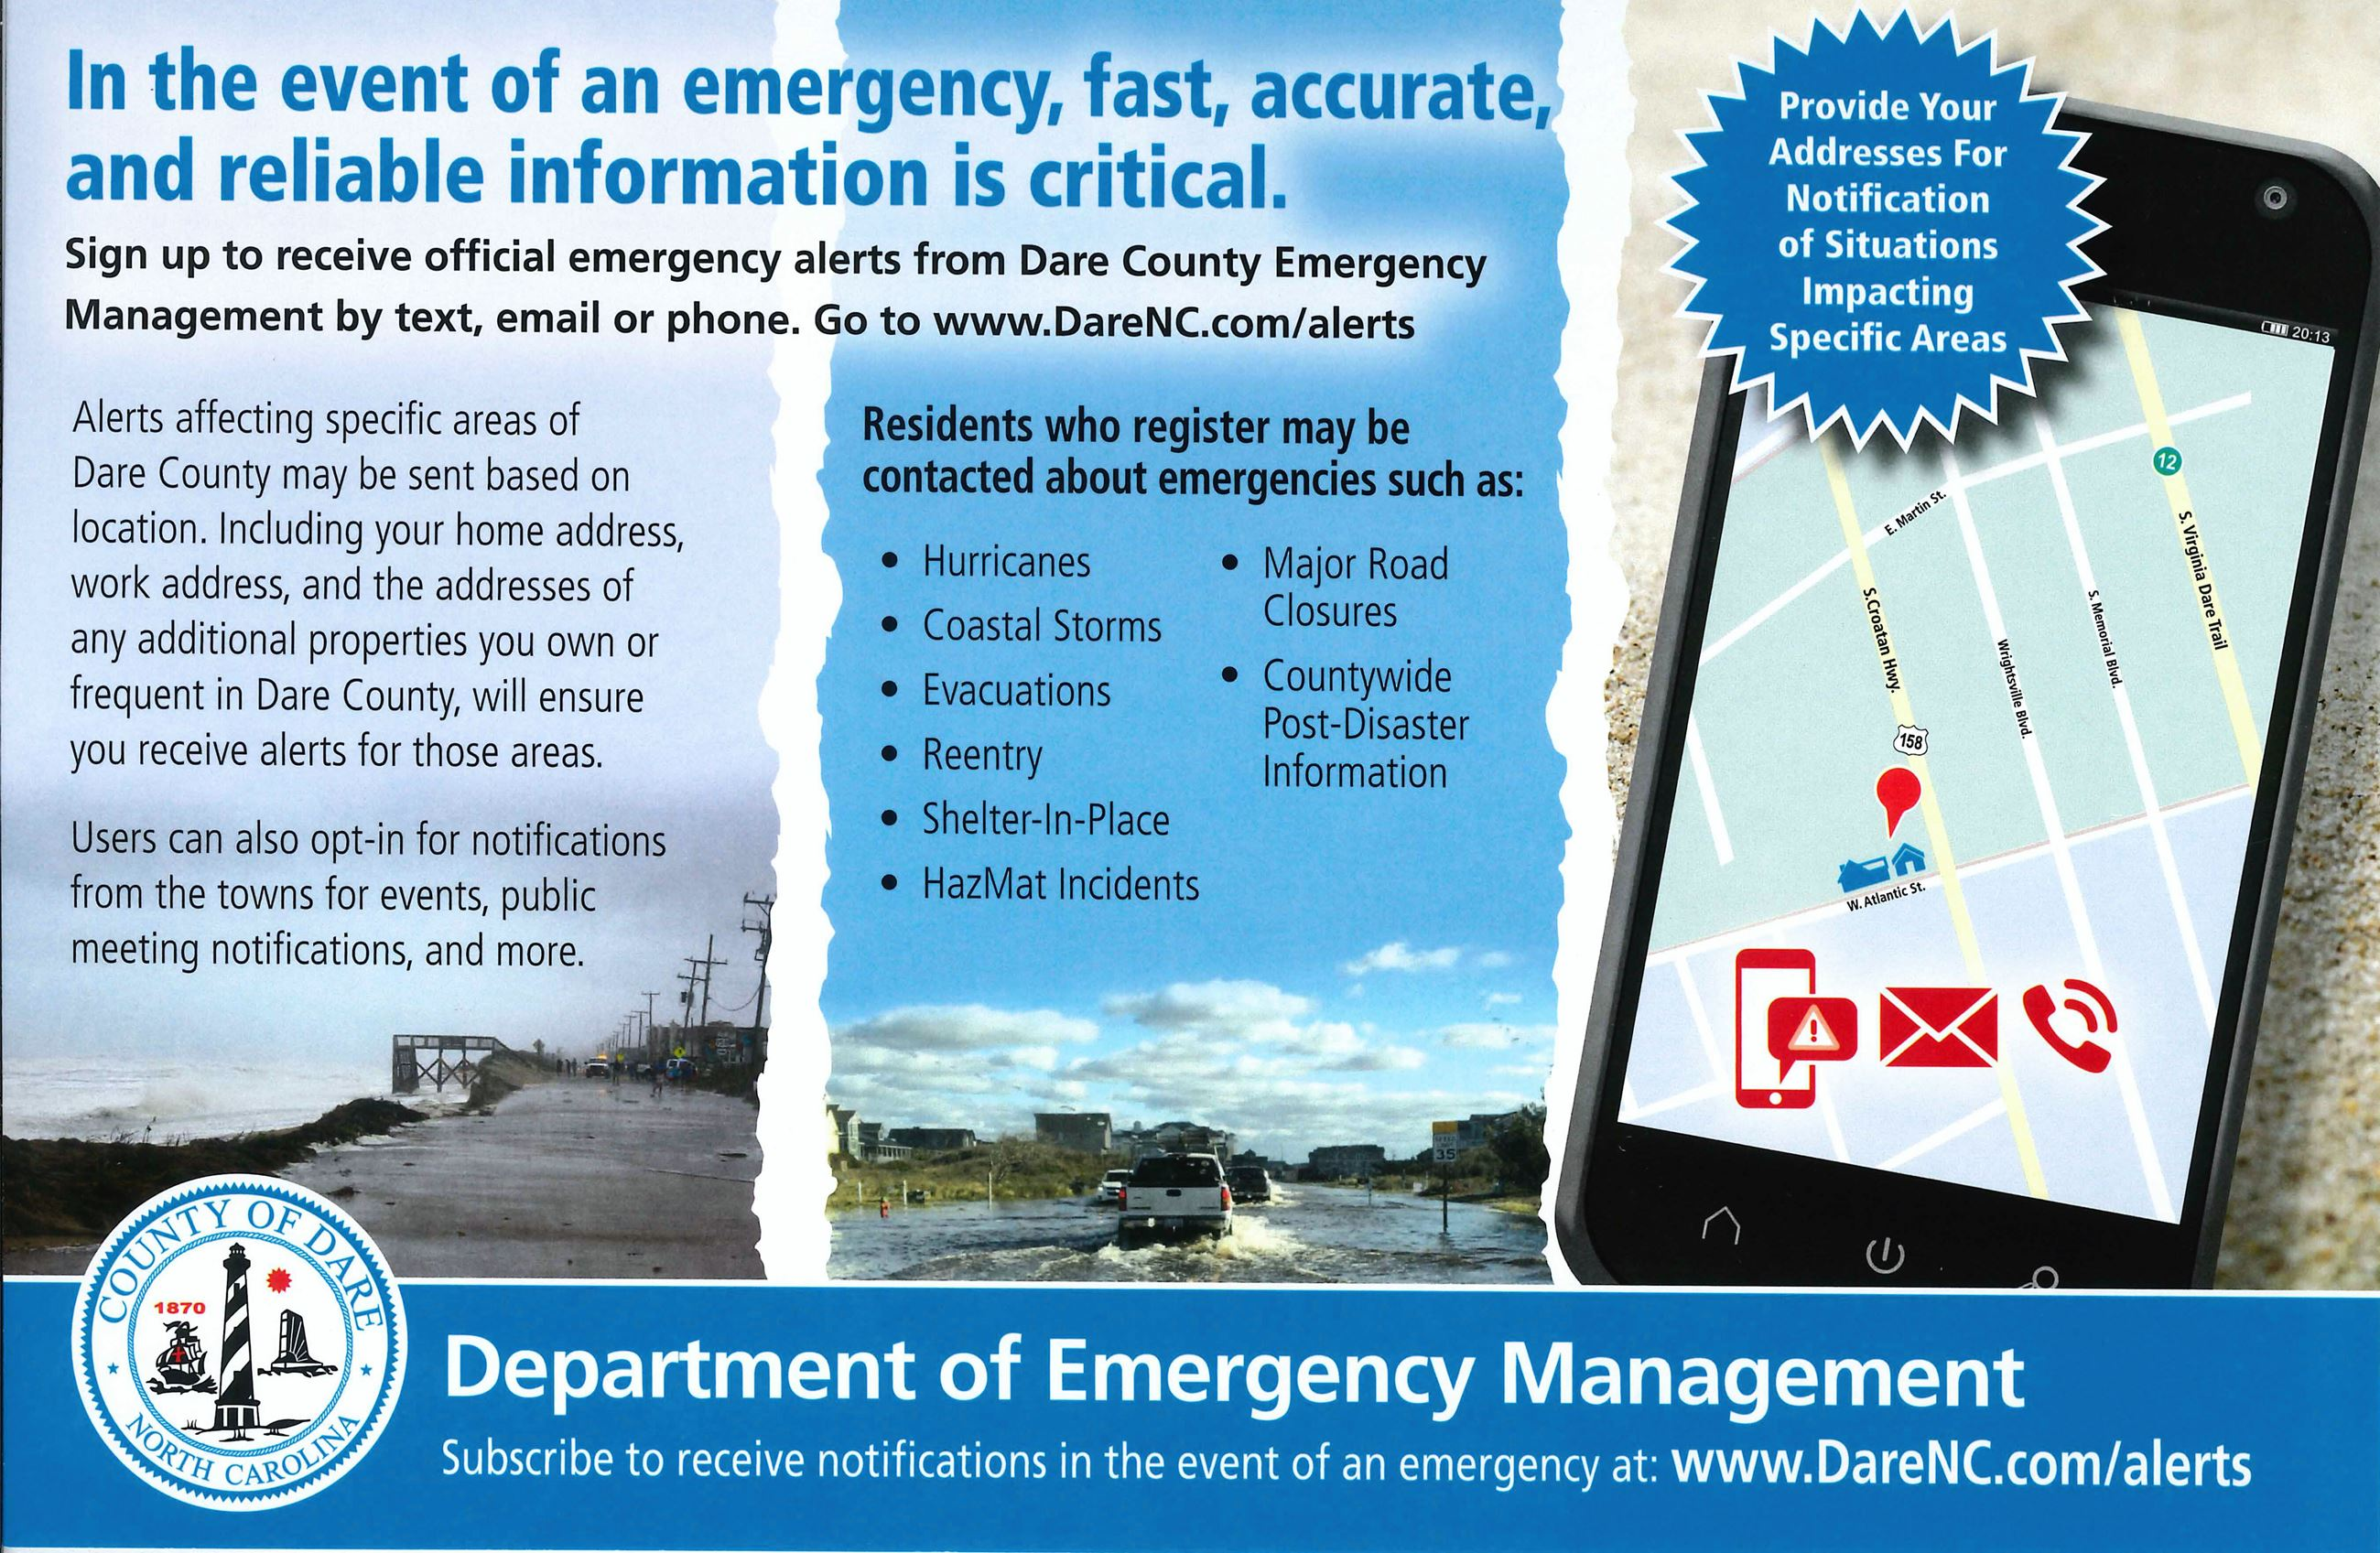 Dare County Emergency Management Information 2018_Page_2